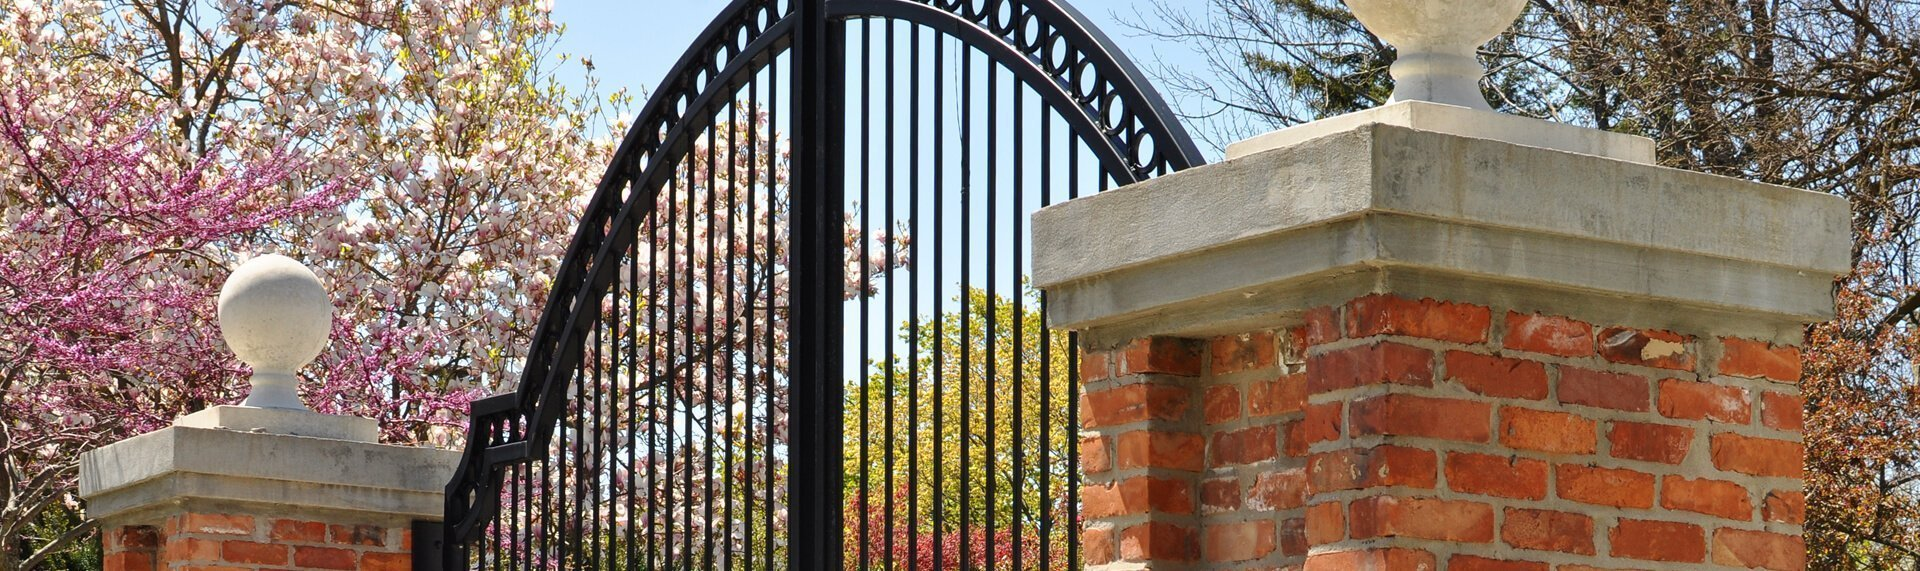 tope of curved metal gate and brick pillars